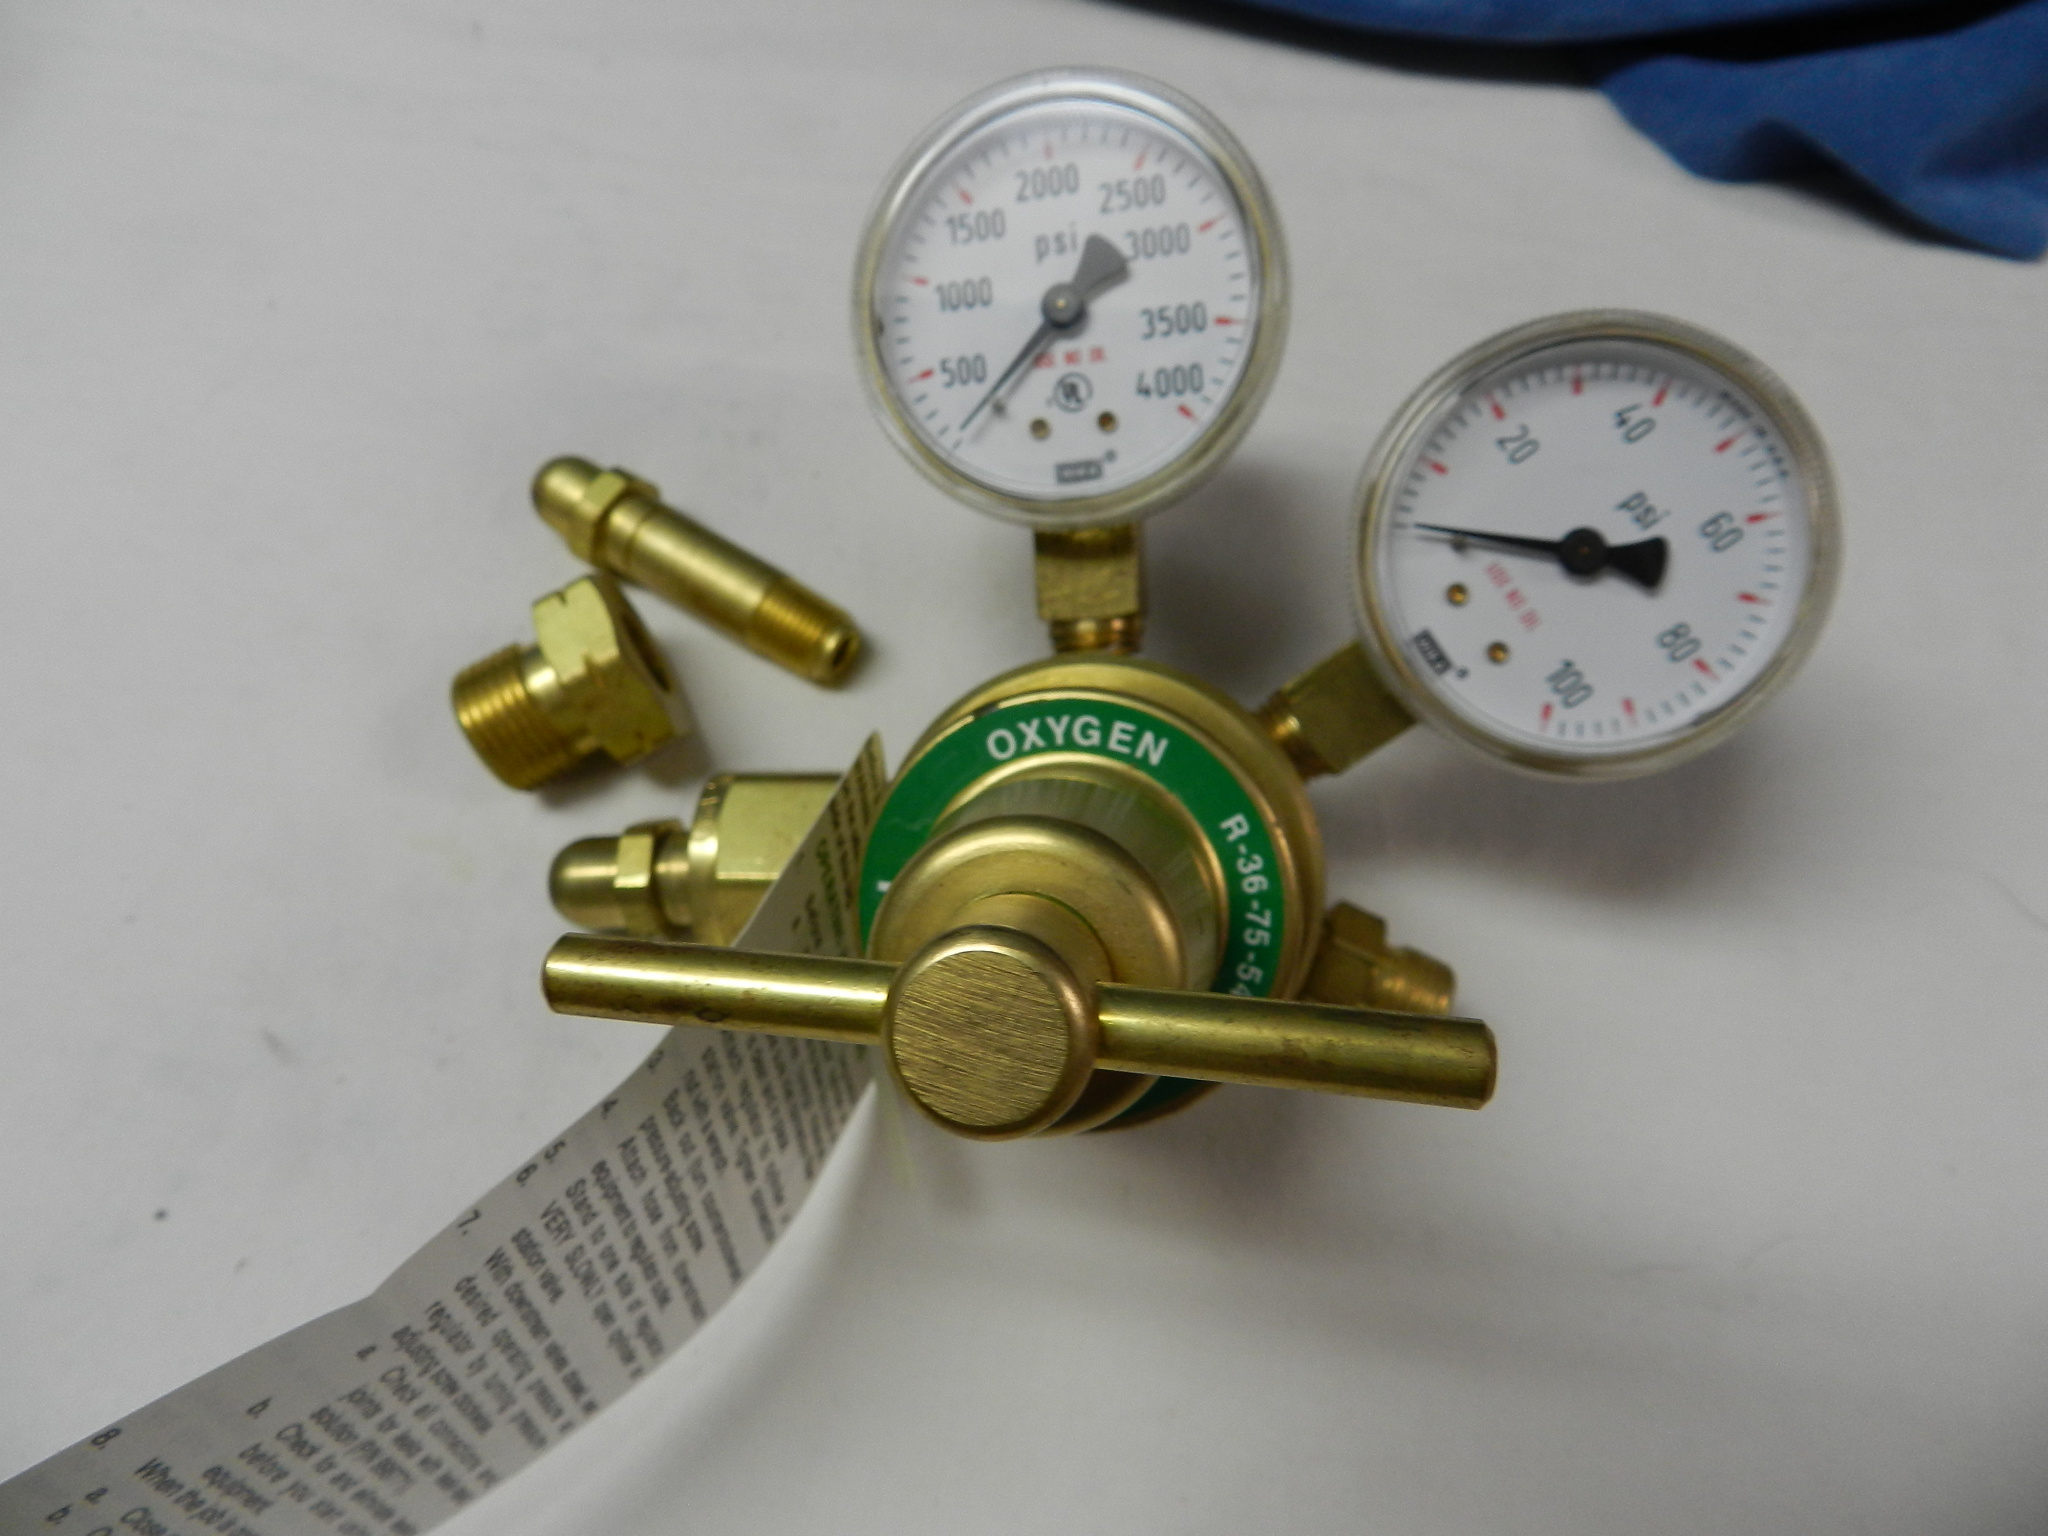 $62 - NEW : Prest-O-Lite Oxygen Regulator